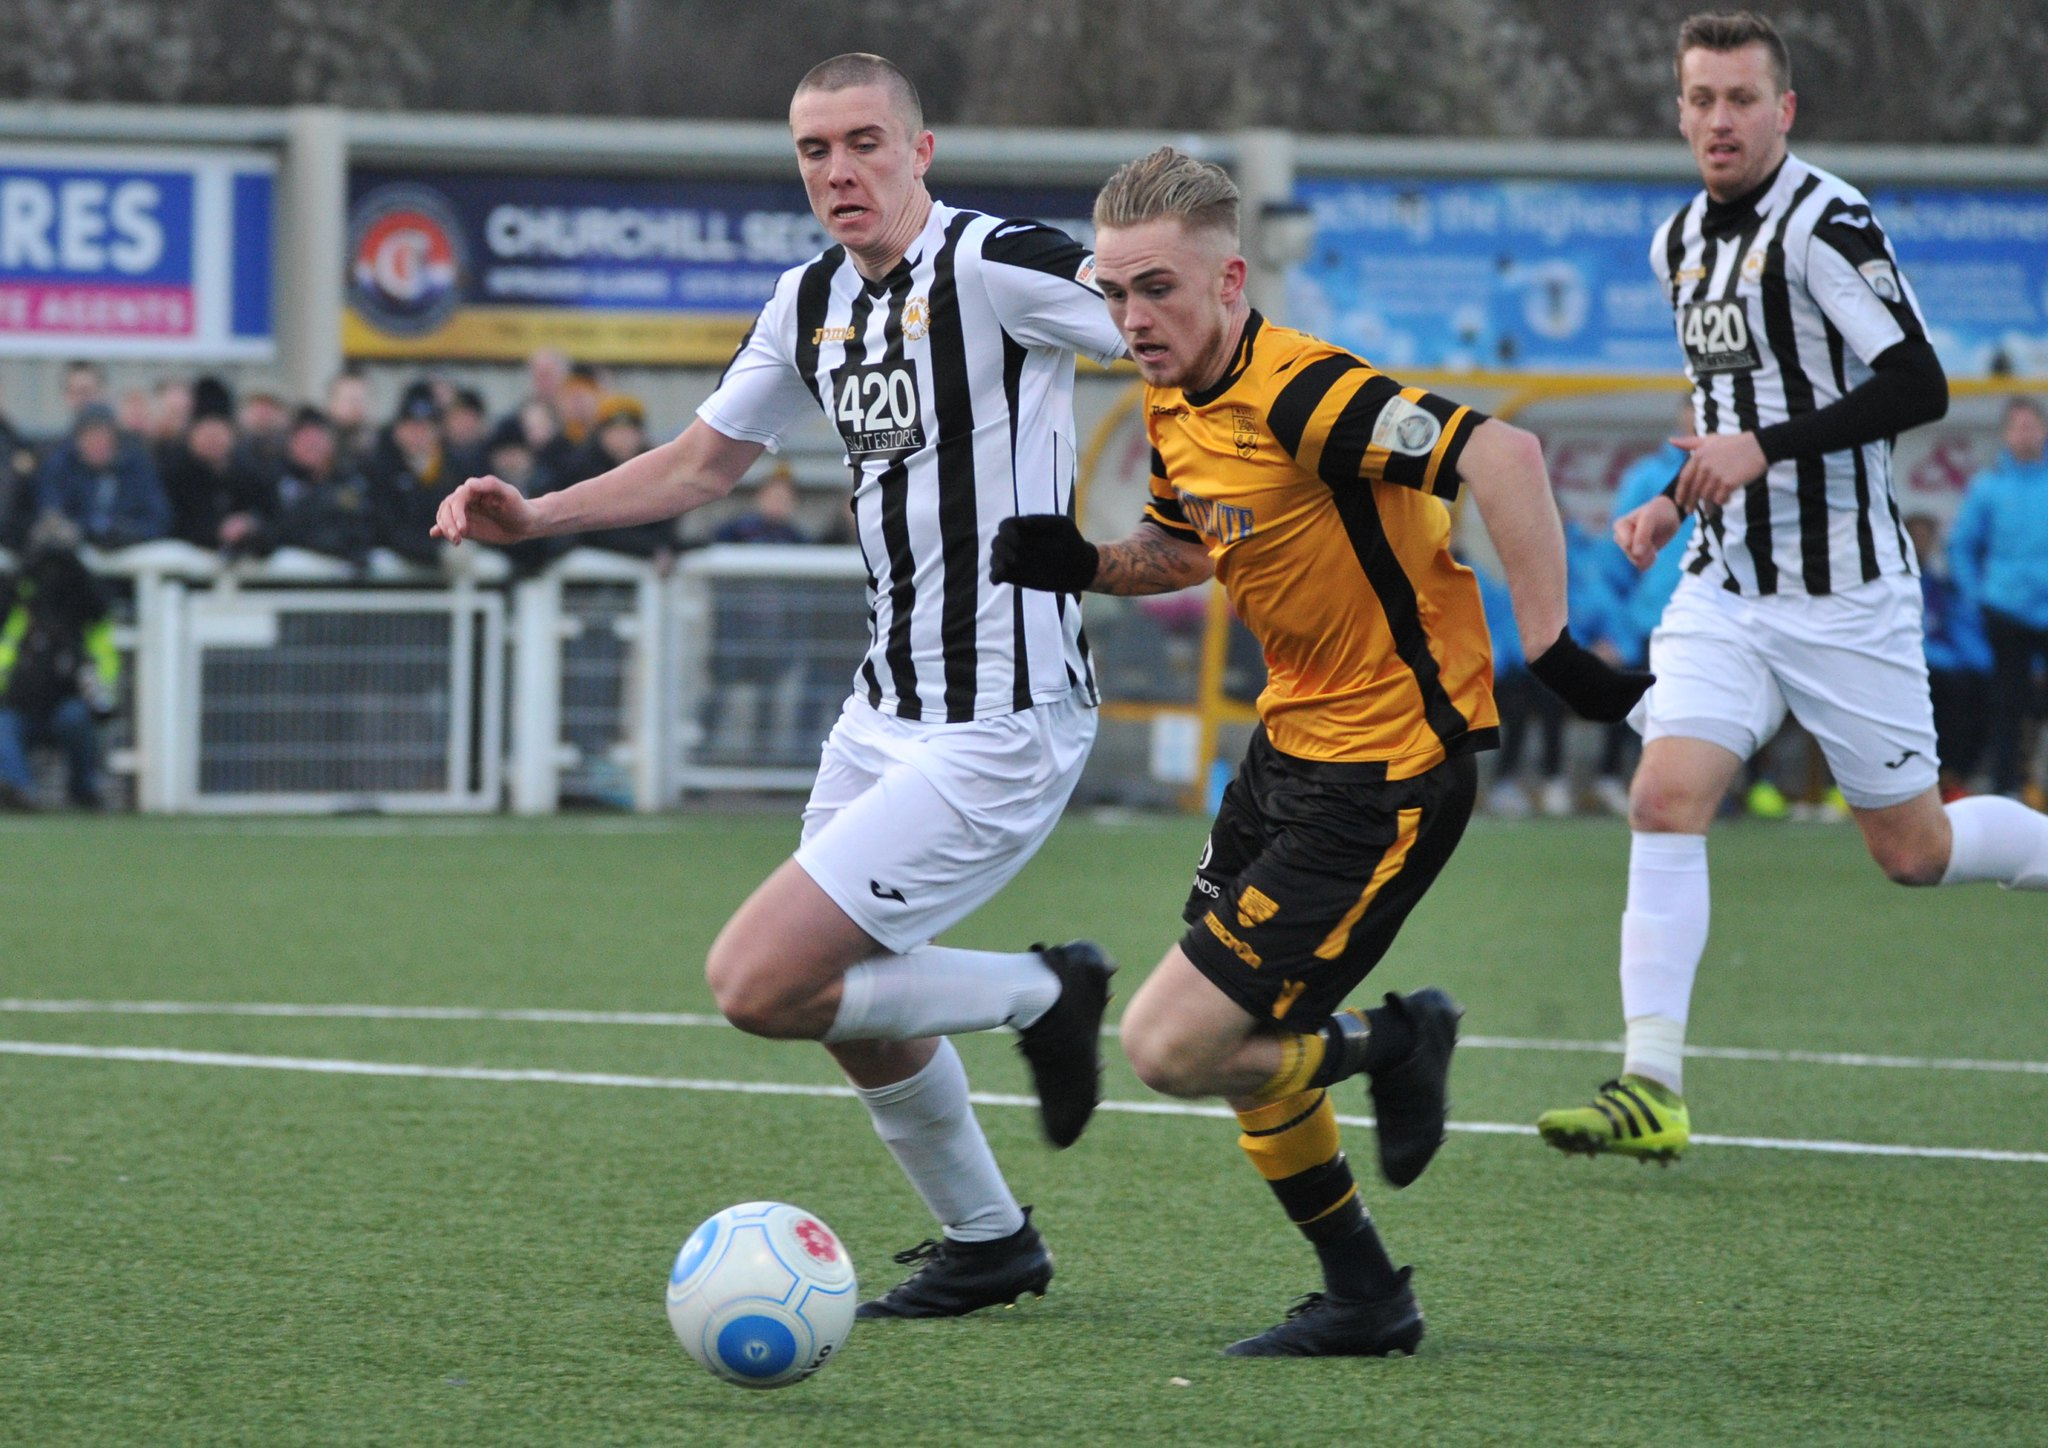 Maidstone United v Torquay United 356